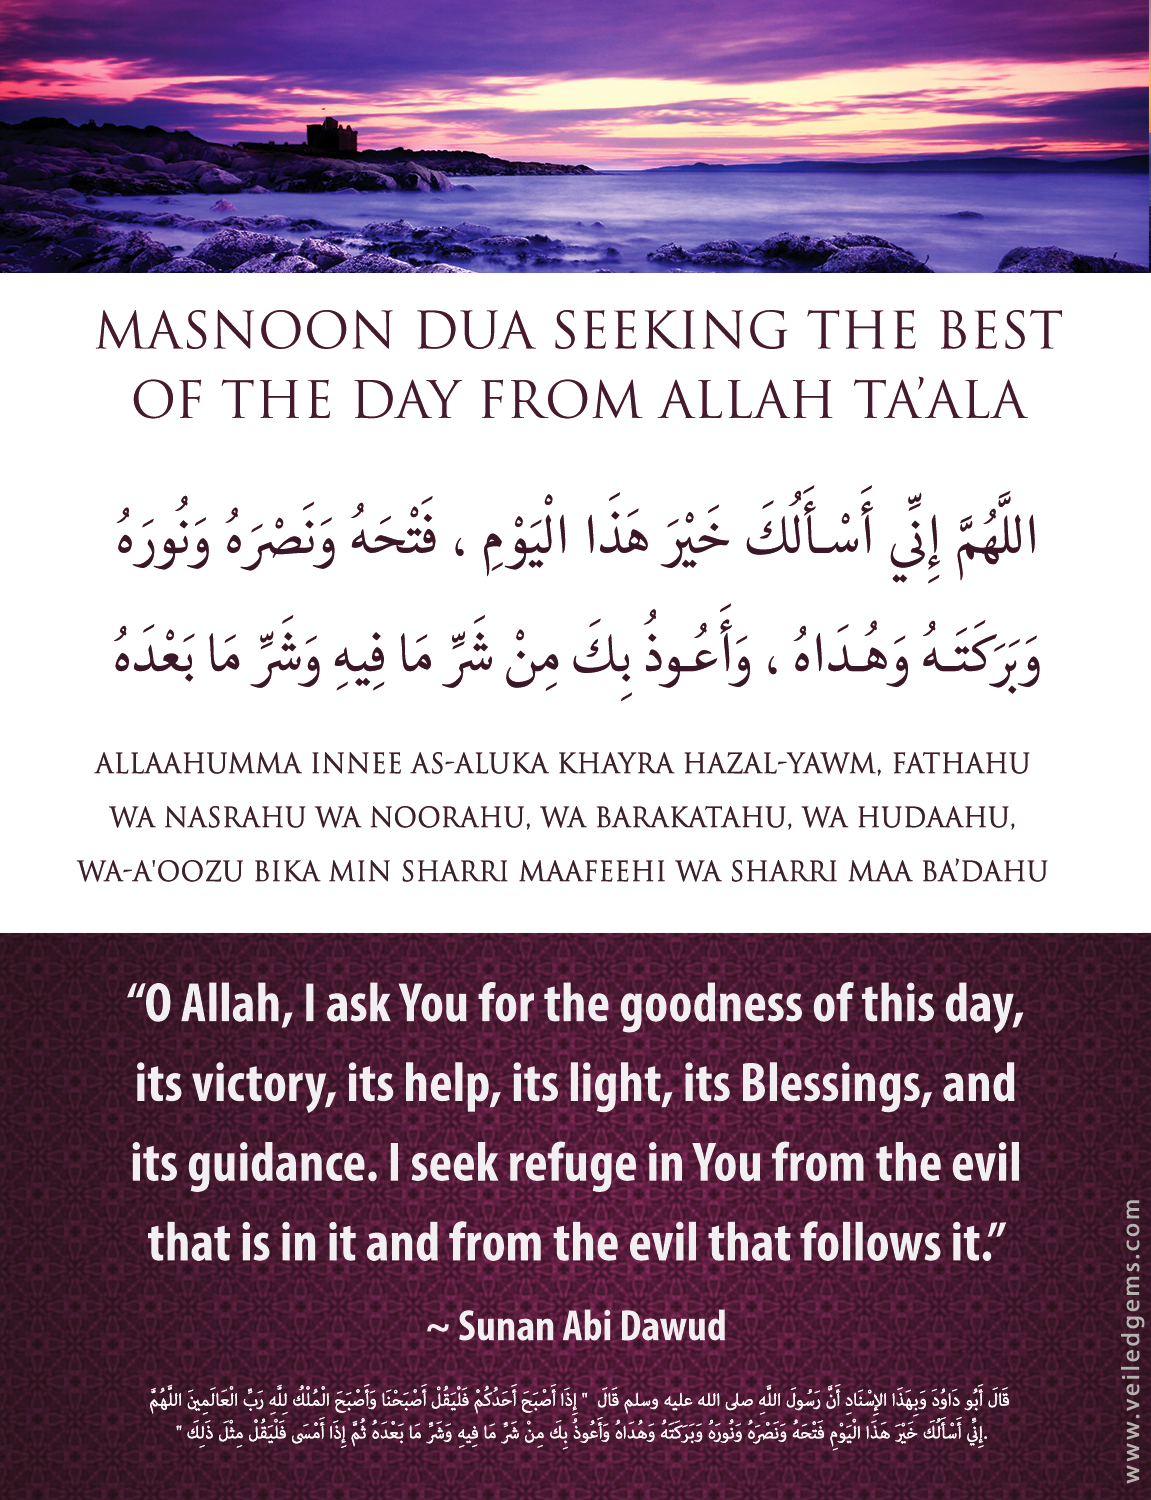 Masnoon Dua ~ Seeking the Best of the Day from Allah Ta'ala